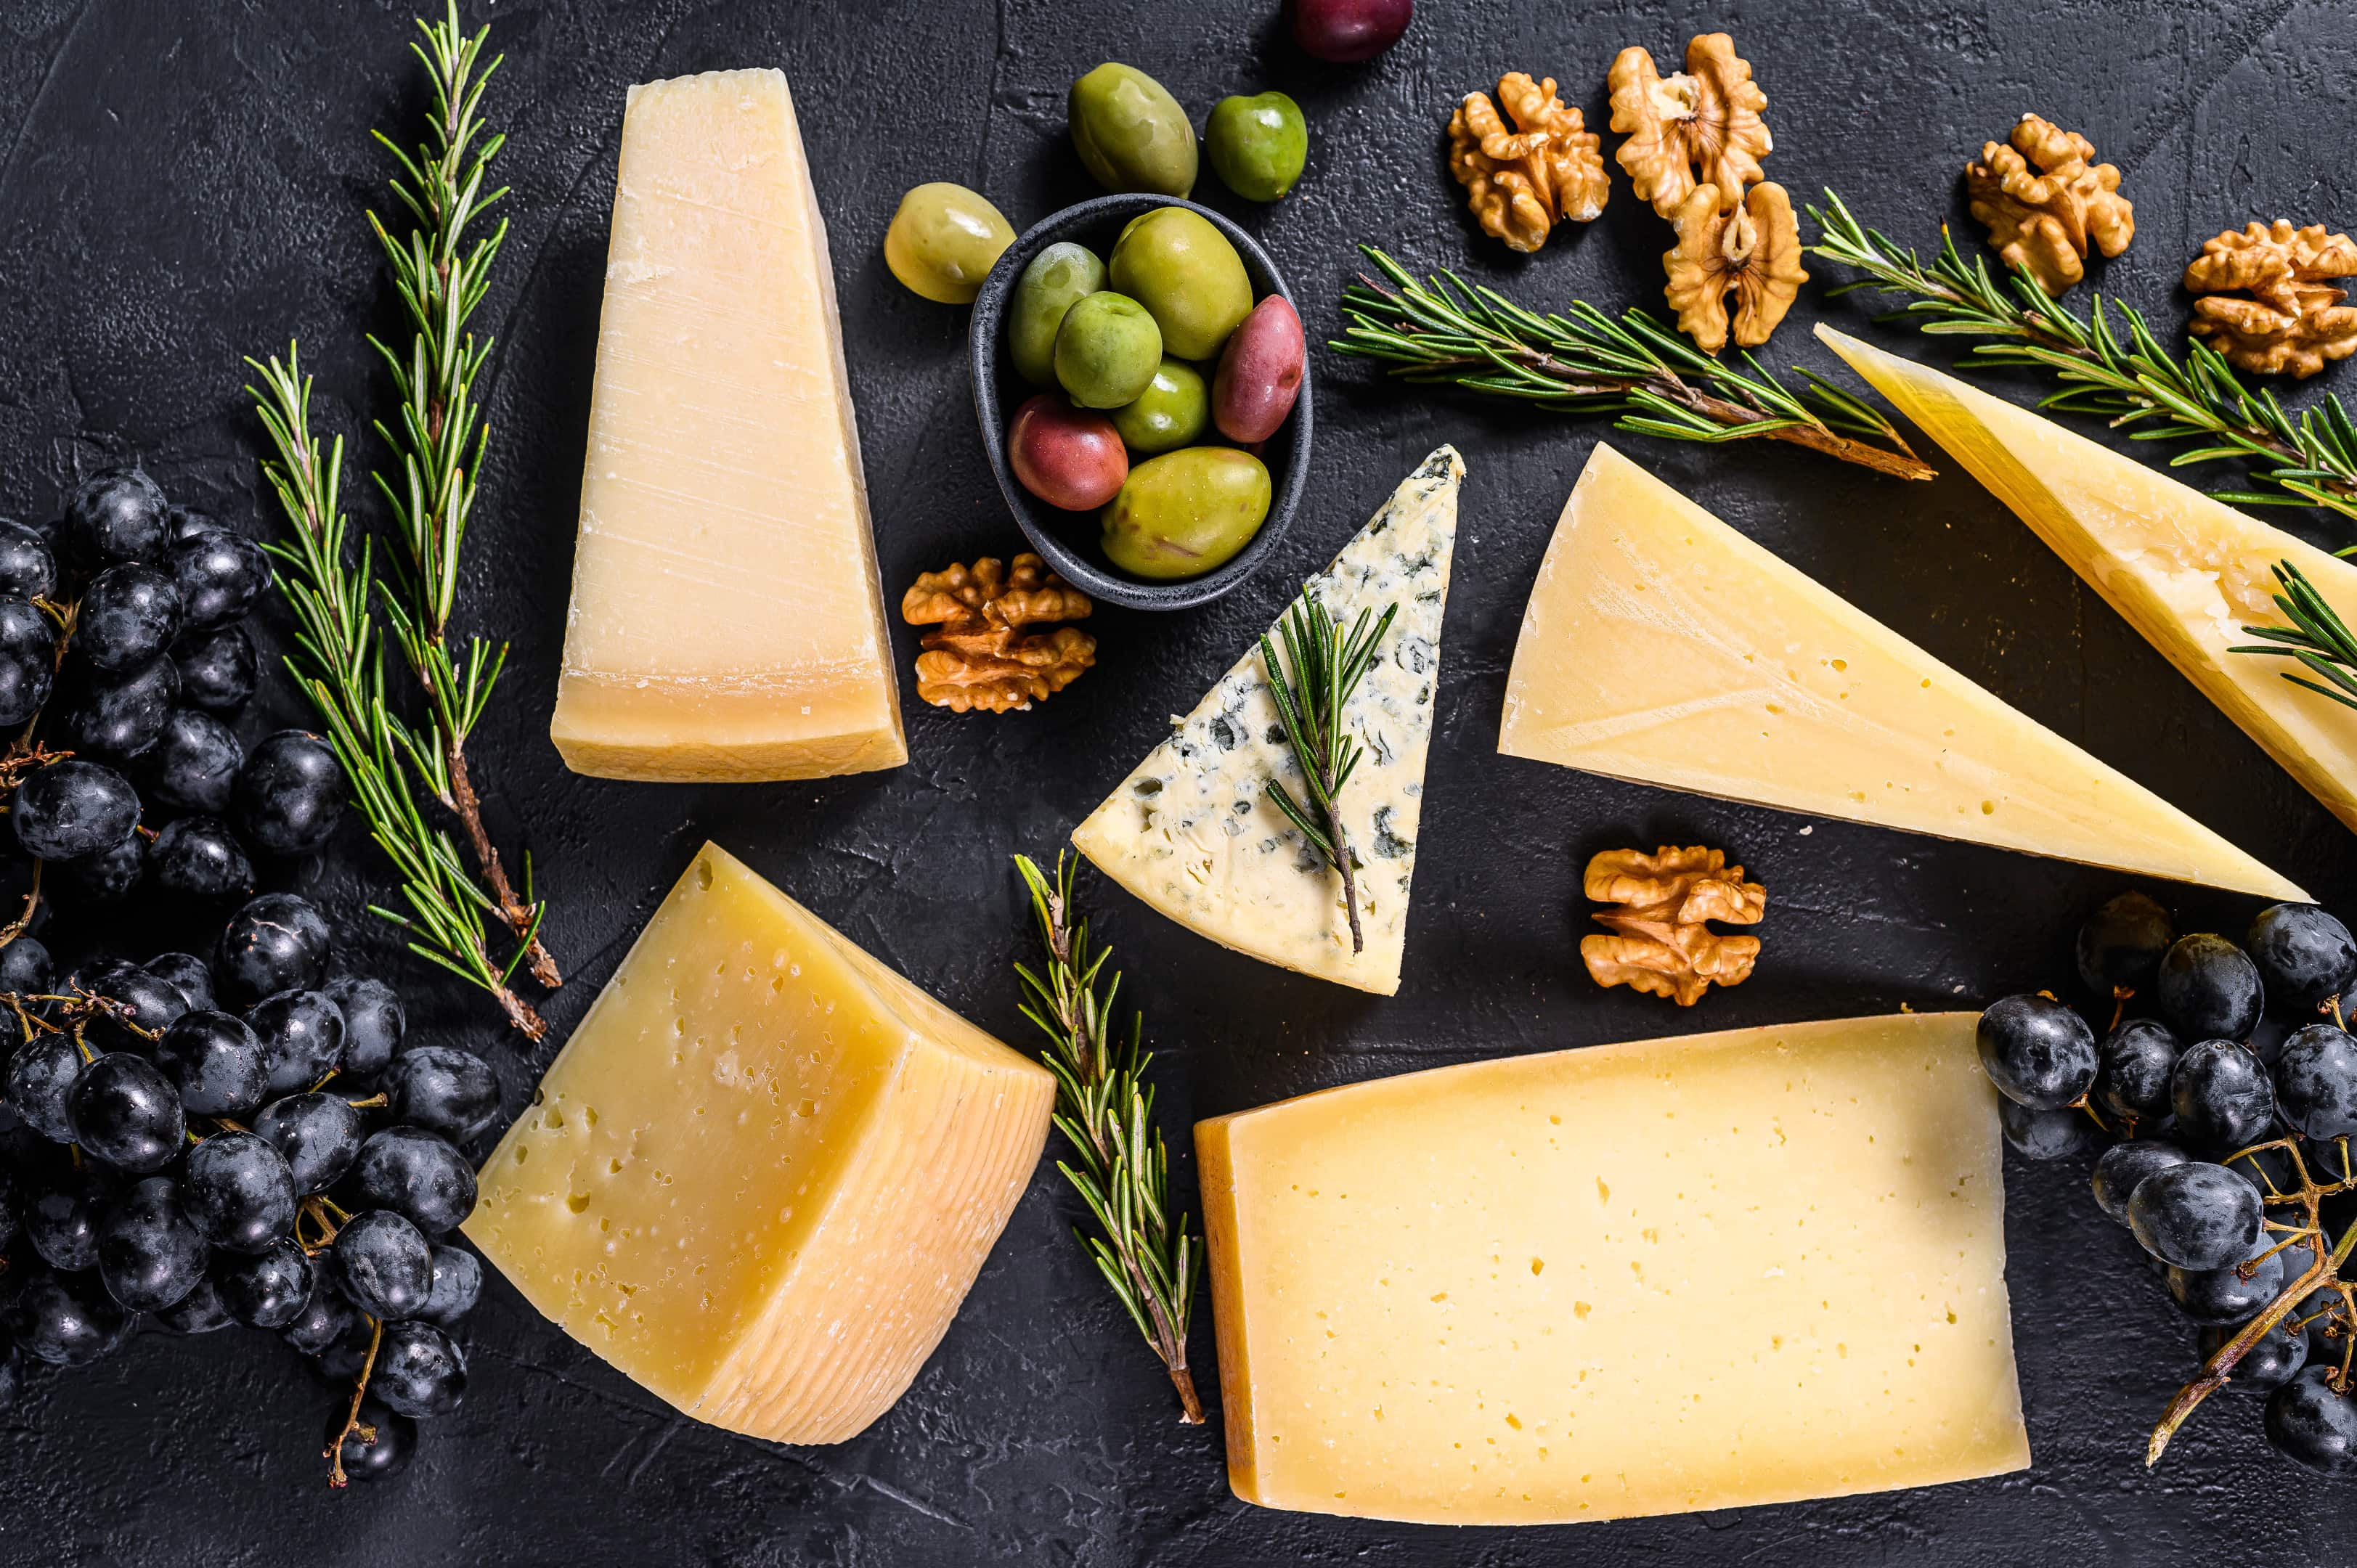 Different types delicious cheese with walnuts and grapes